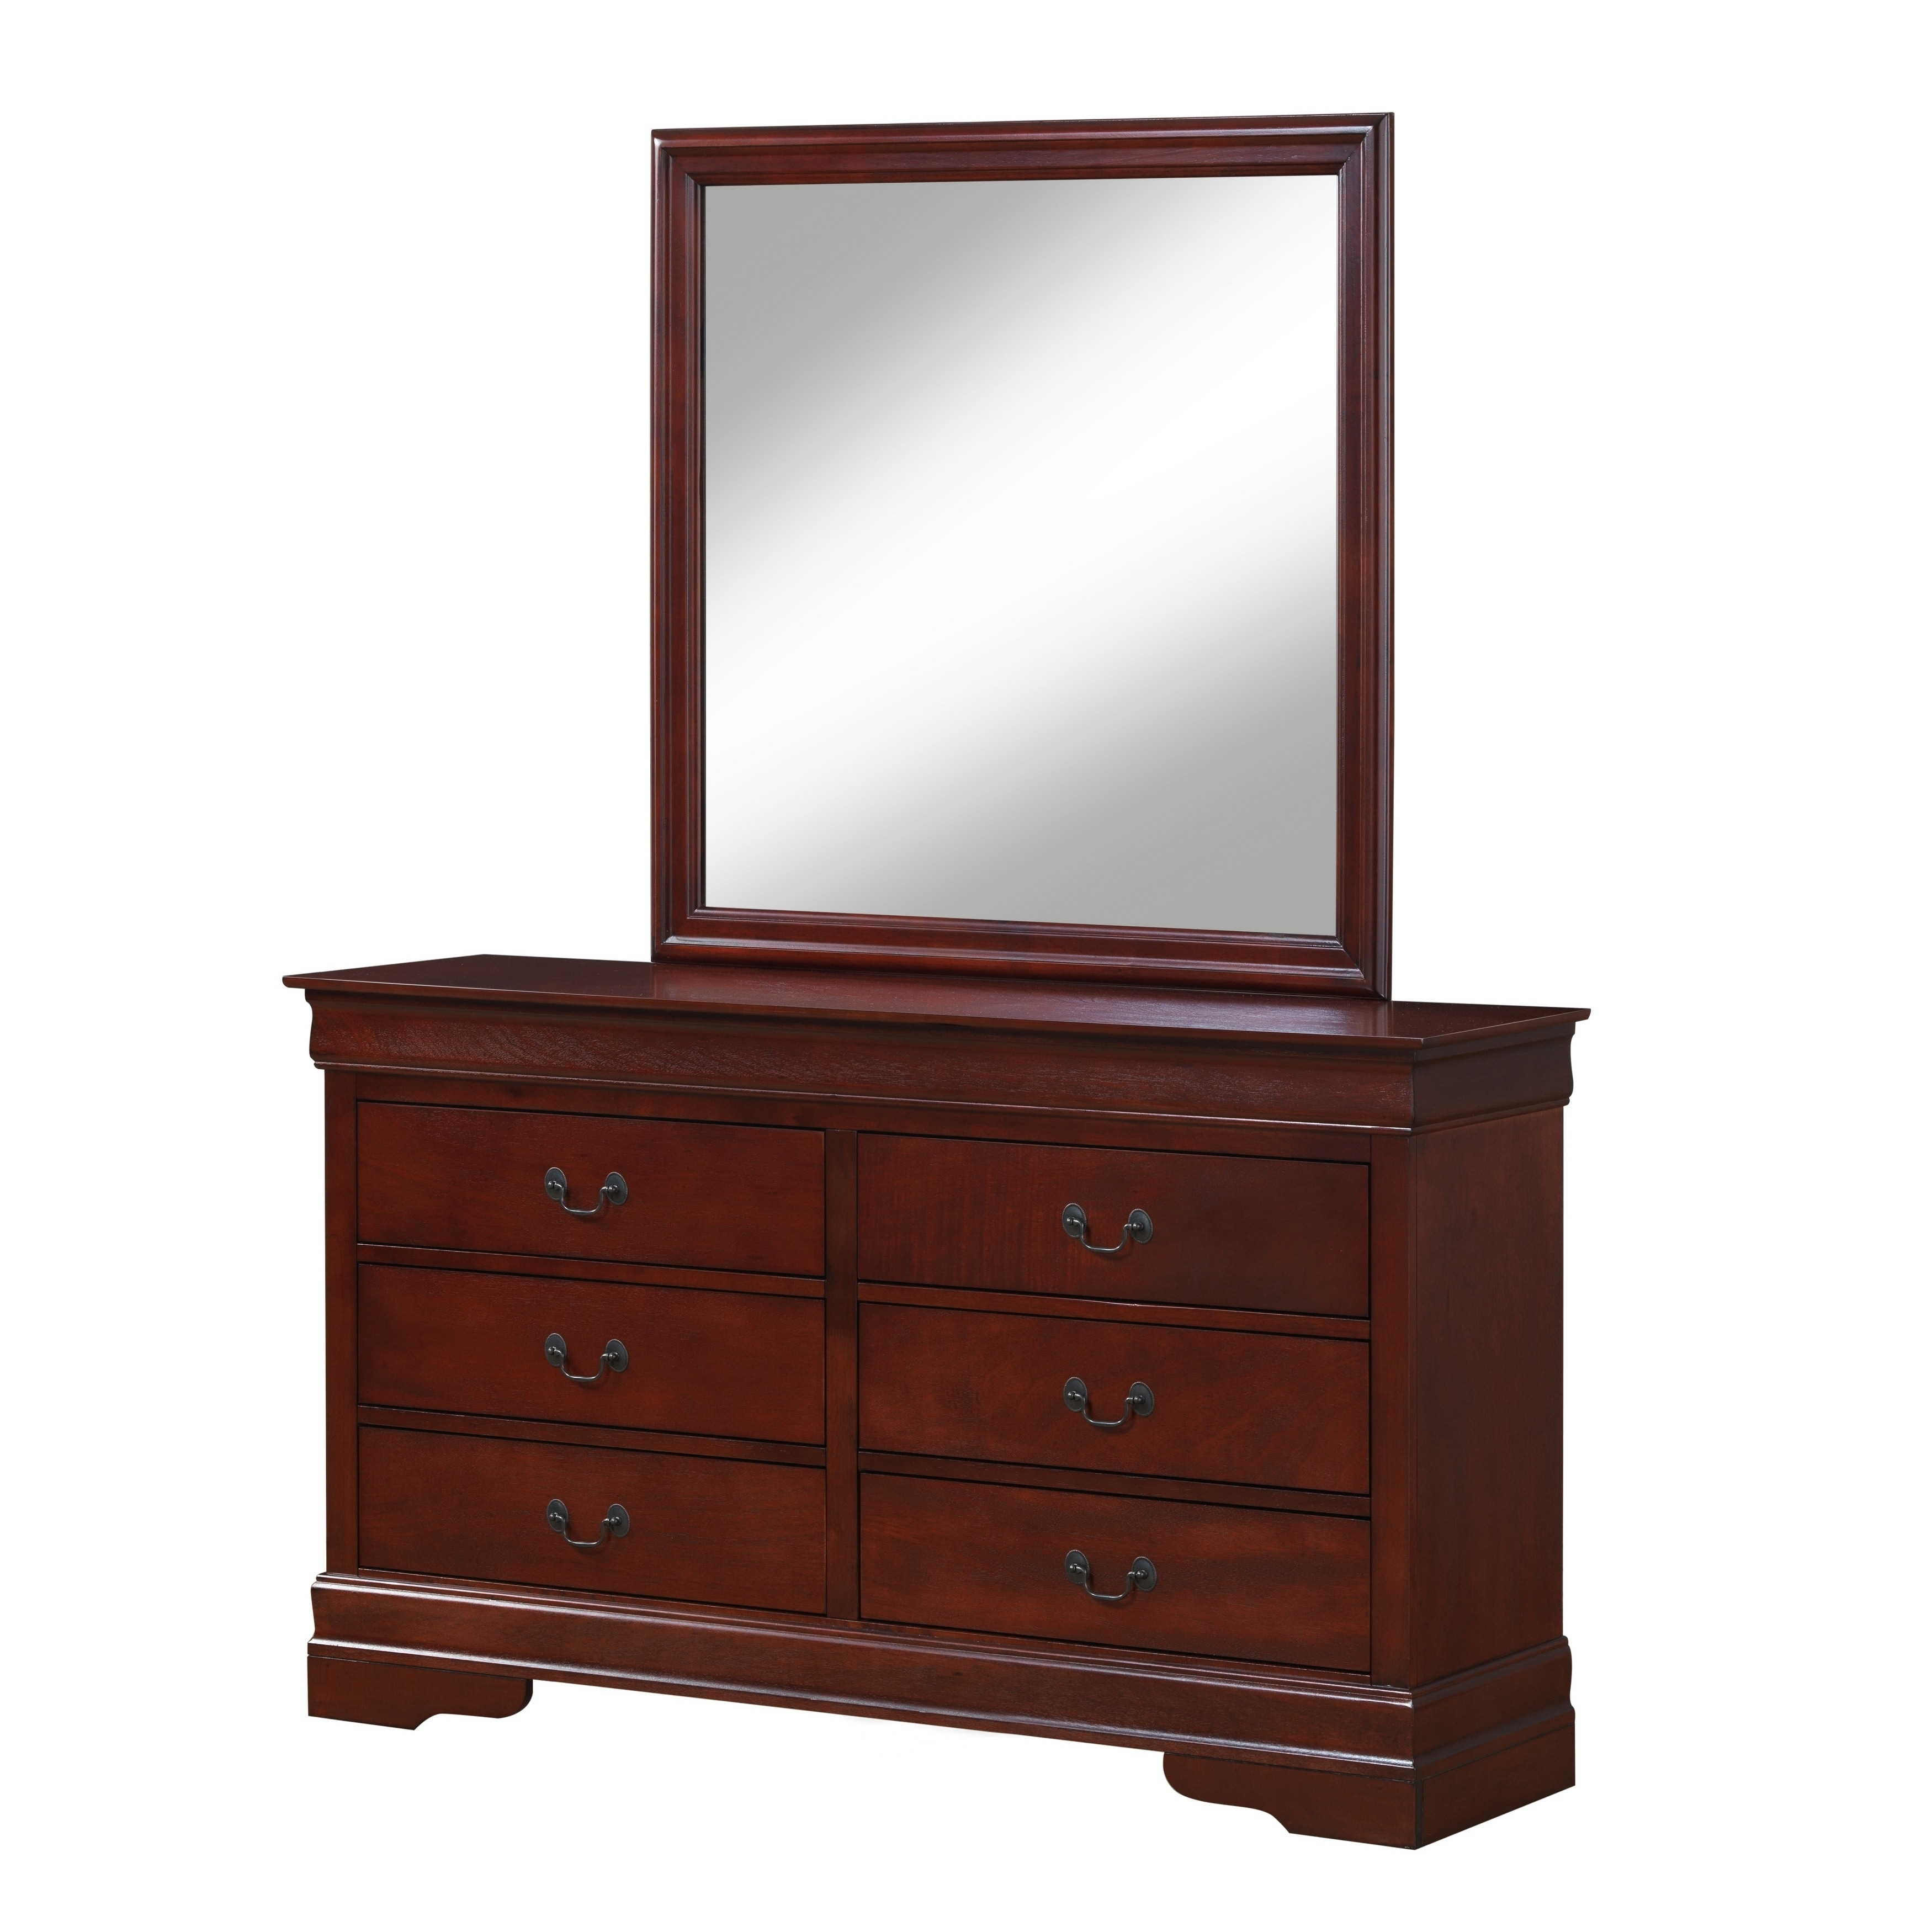 product piece overstock furniture divonne orchid dresser home silver black today modern free of mirror and garden america set hale shipping